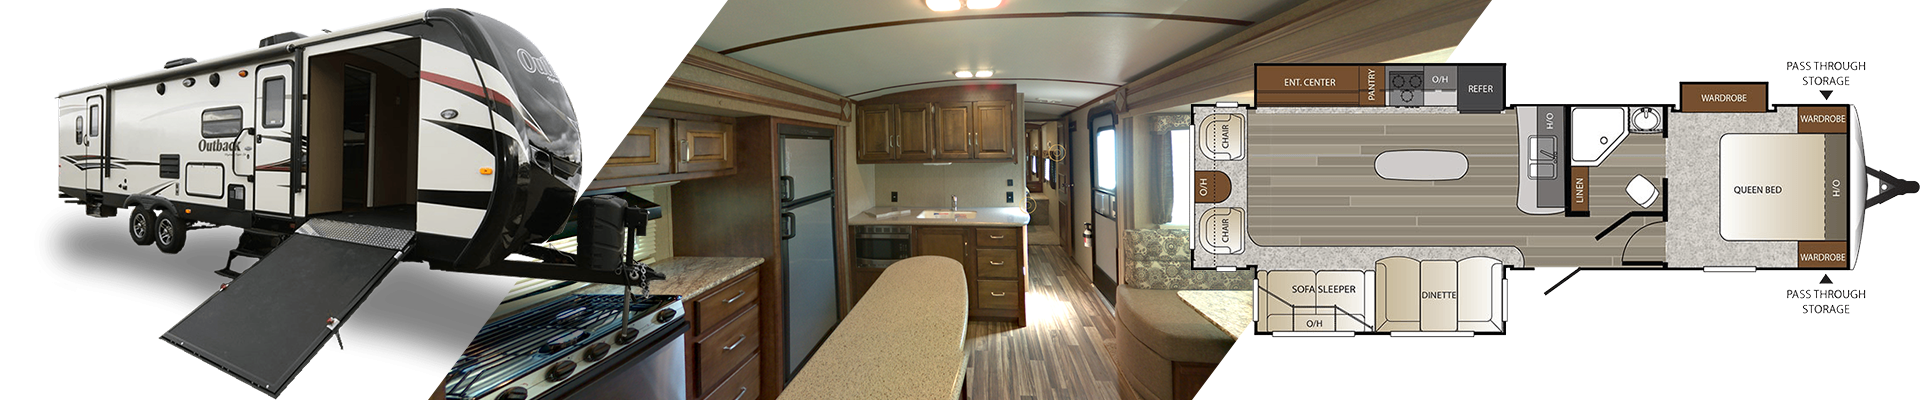 Keystone Outback travel trailer - interior, exterior and floorplan views.